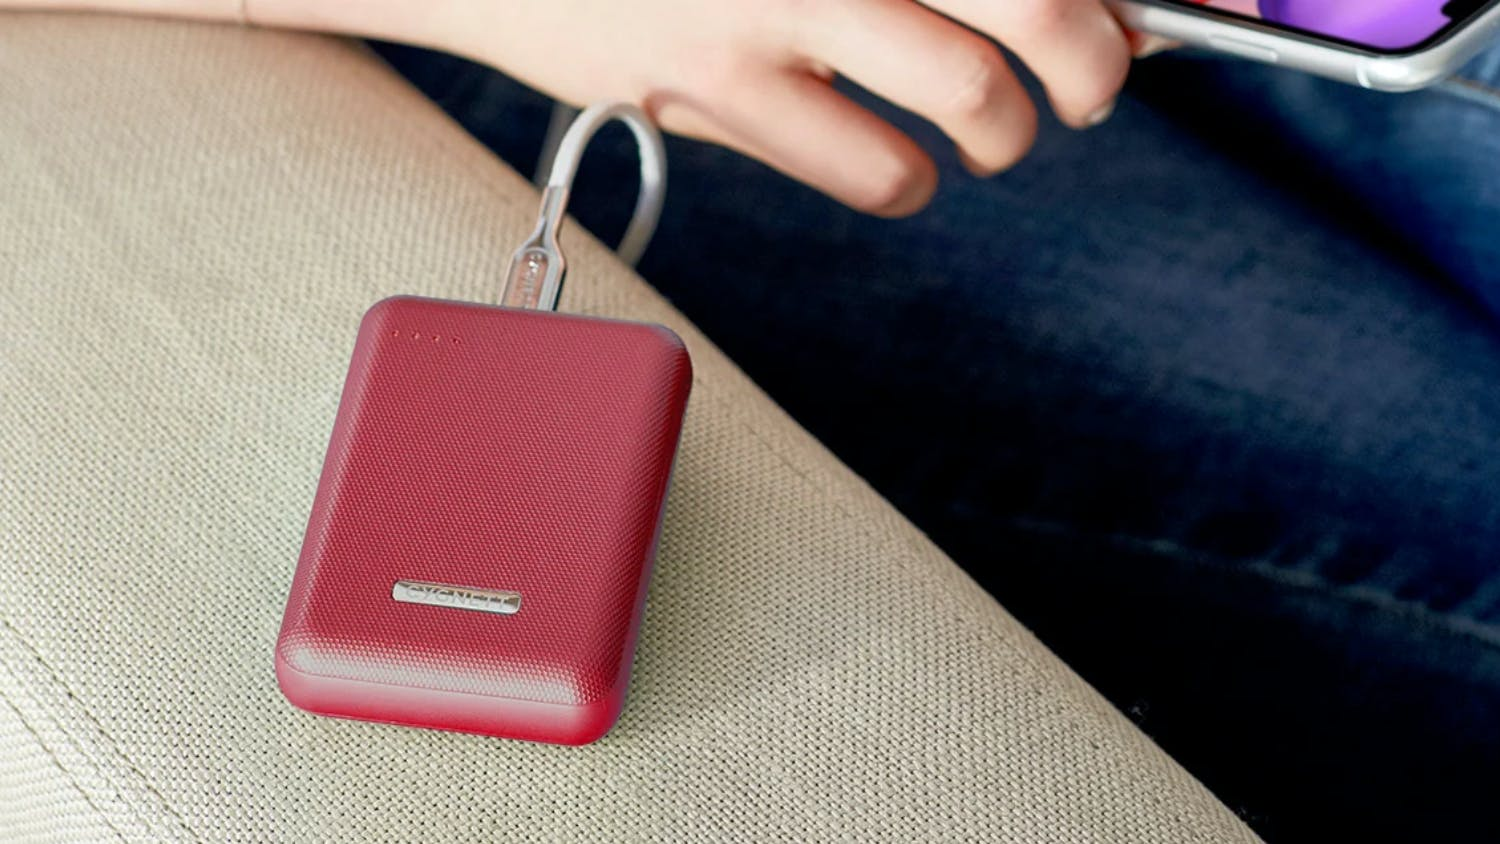 Cygnett ChargeUp Reserve 10,000mAh 18W Power Bank - Red